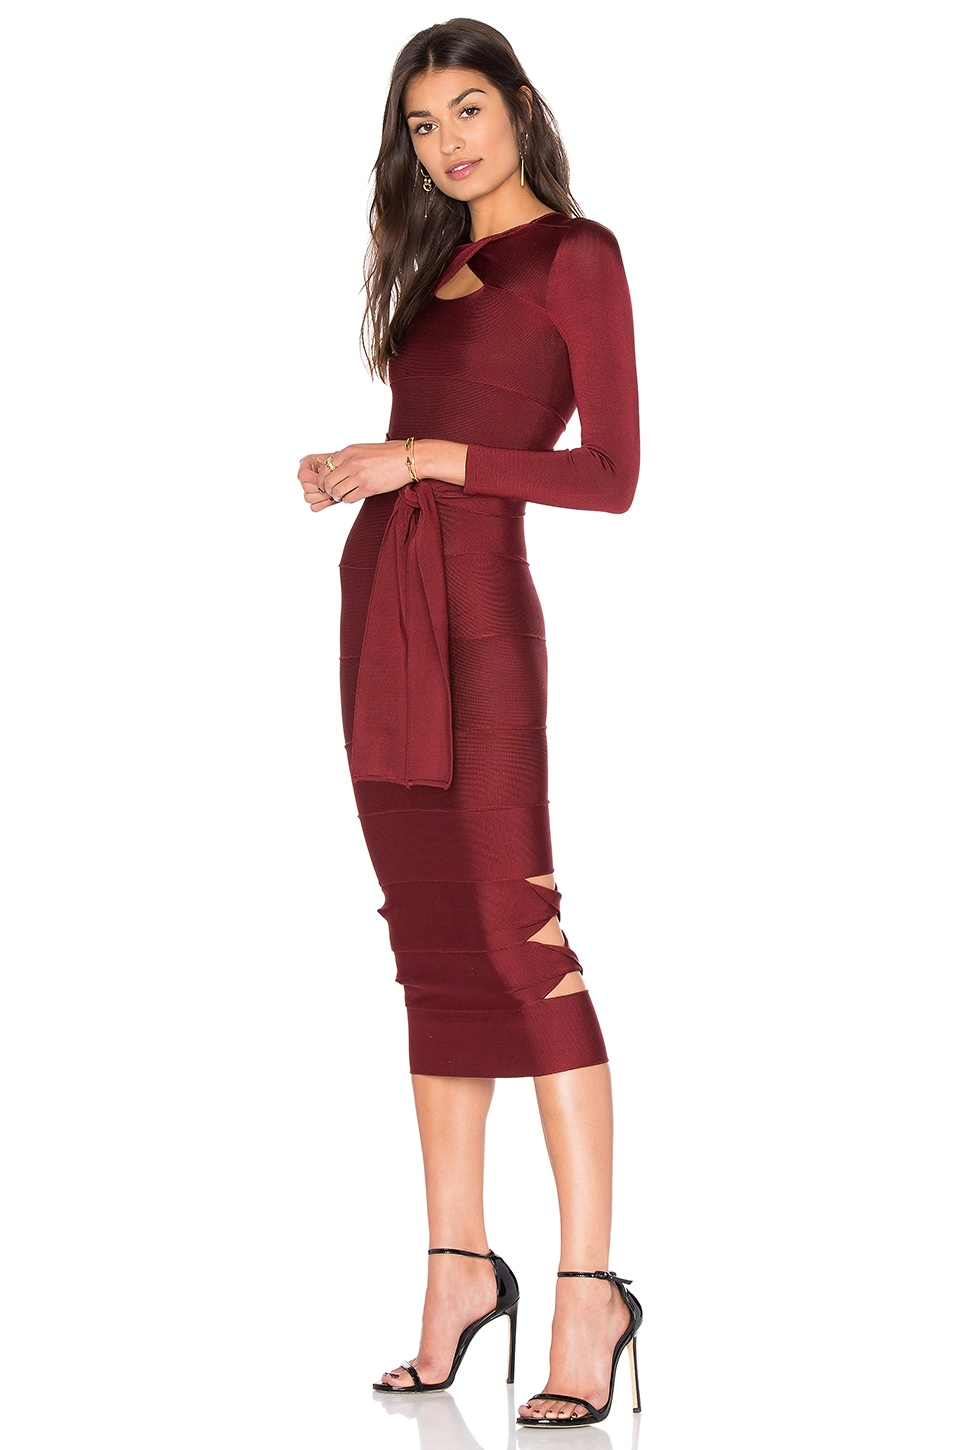 Sophia Long Sleeve Bodycon Dress by LOLITTA